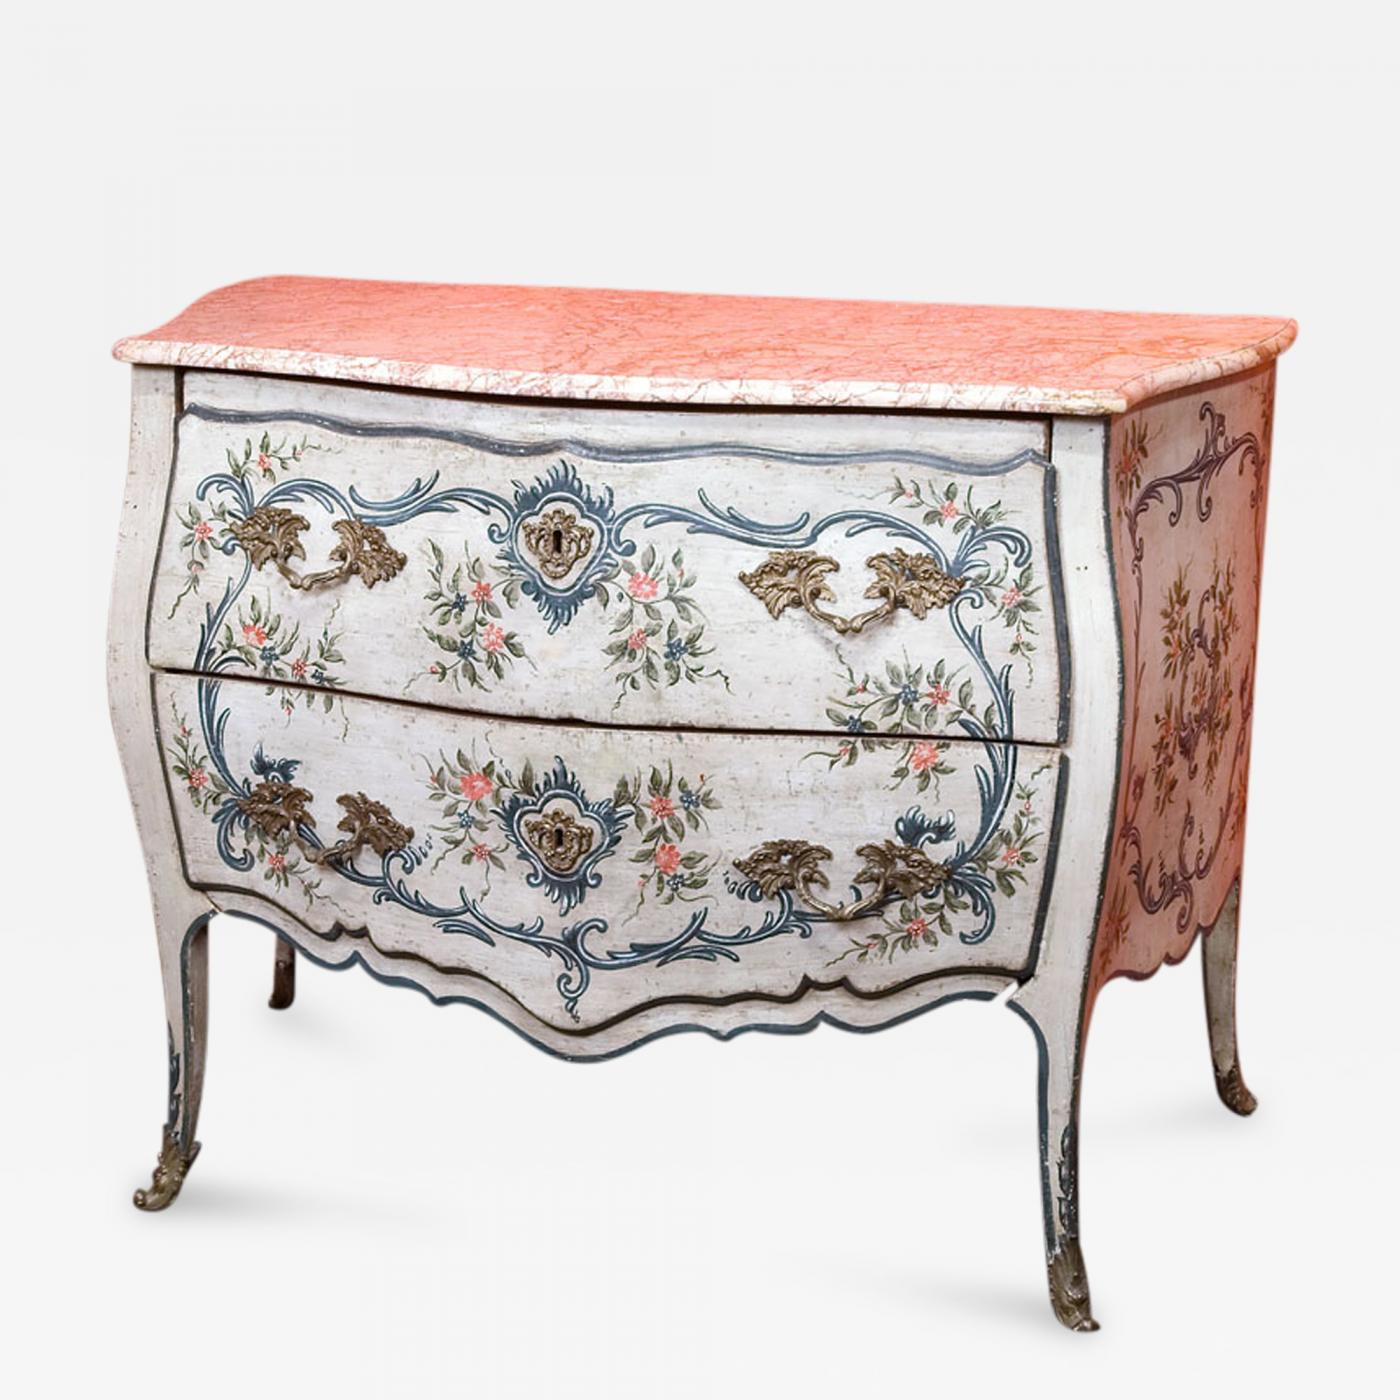 Commode Rose A Lacquered Wood Ligurian Commode With Rose Debrignoles Marble Top